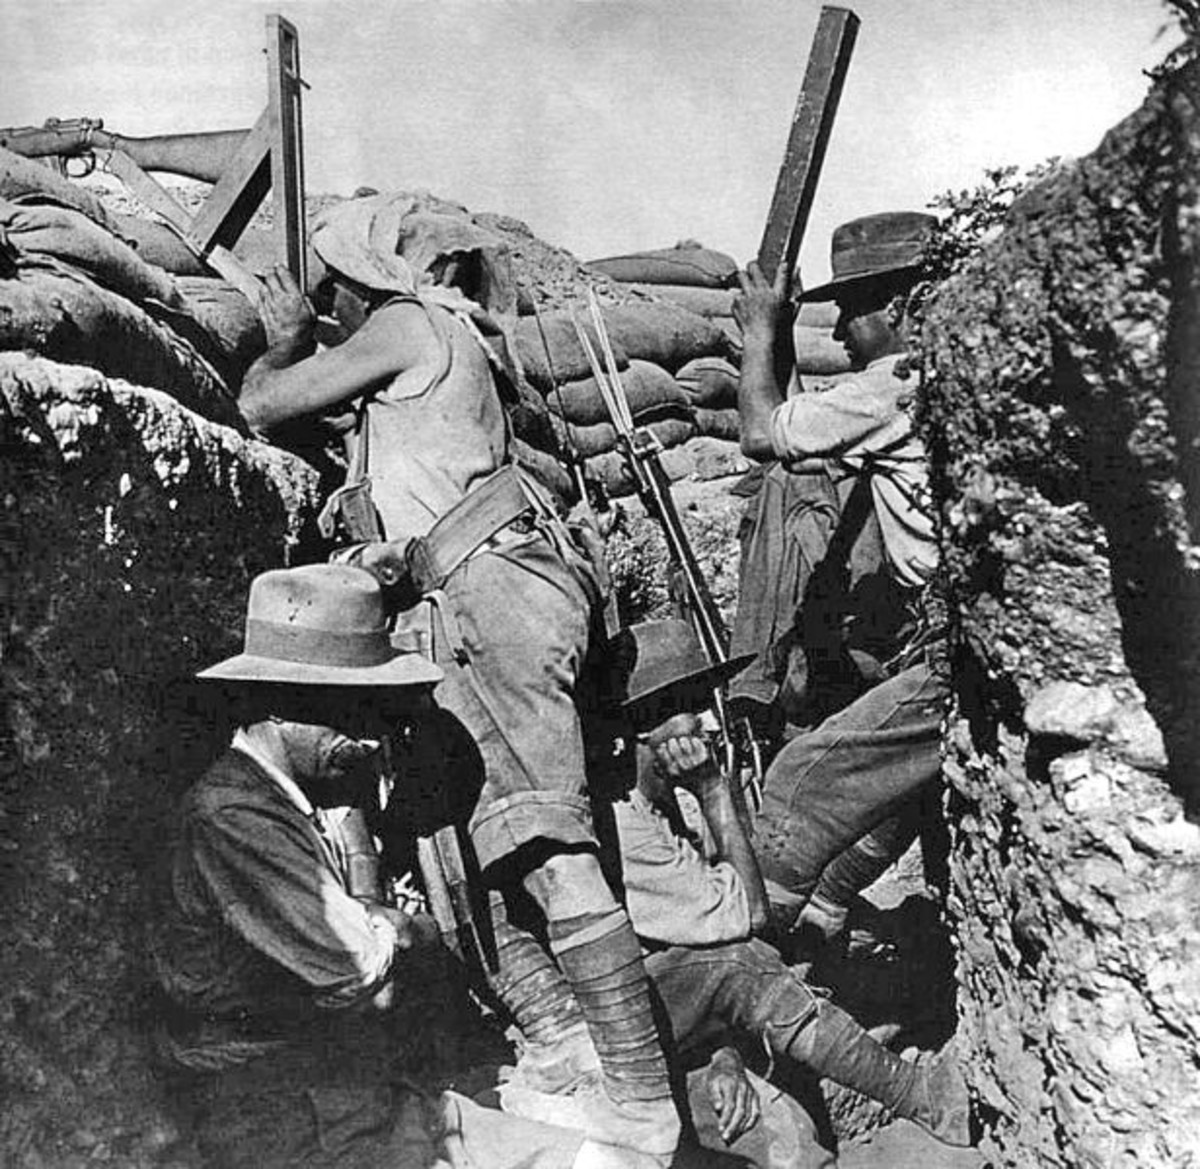 Australian using a periscope rifle at Gallipoli, 1915.